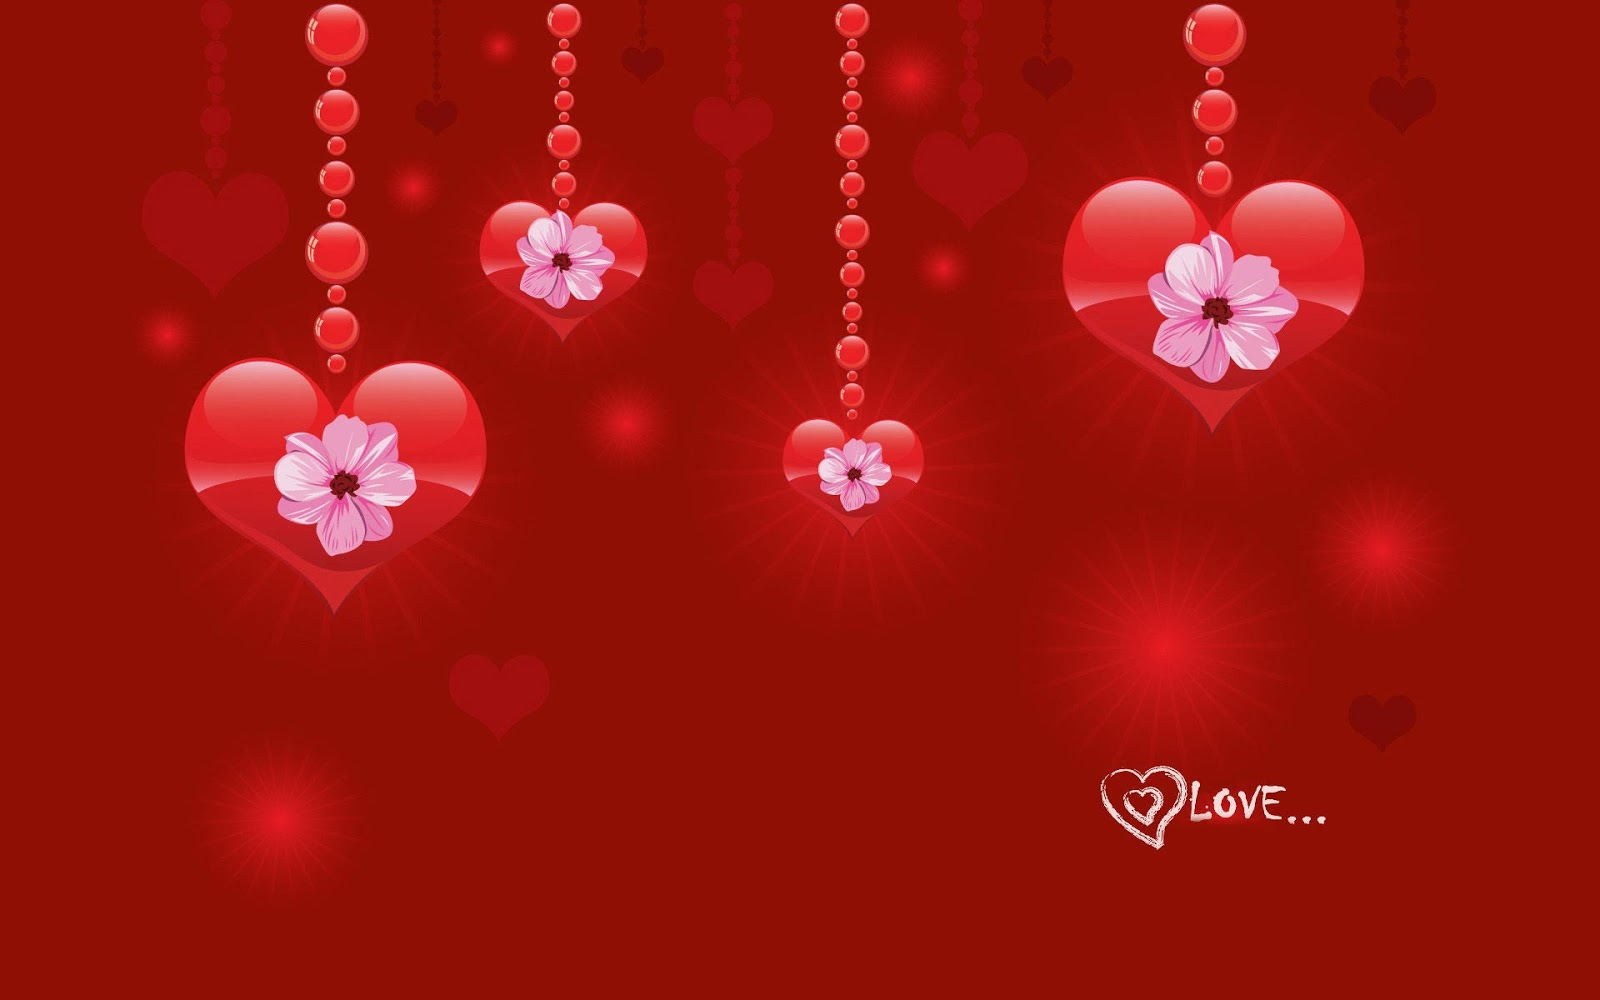 http://1.bp.blogspot.com/-dN9aRC9bGBc/UQ-Xb2qBgYI/AAAAAAAADcg/4or8zIkdewk/s1600/valentines+day+wallpaper+Love+photos.jpg